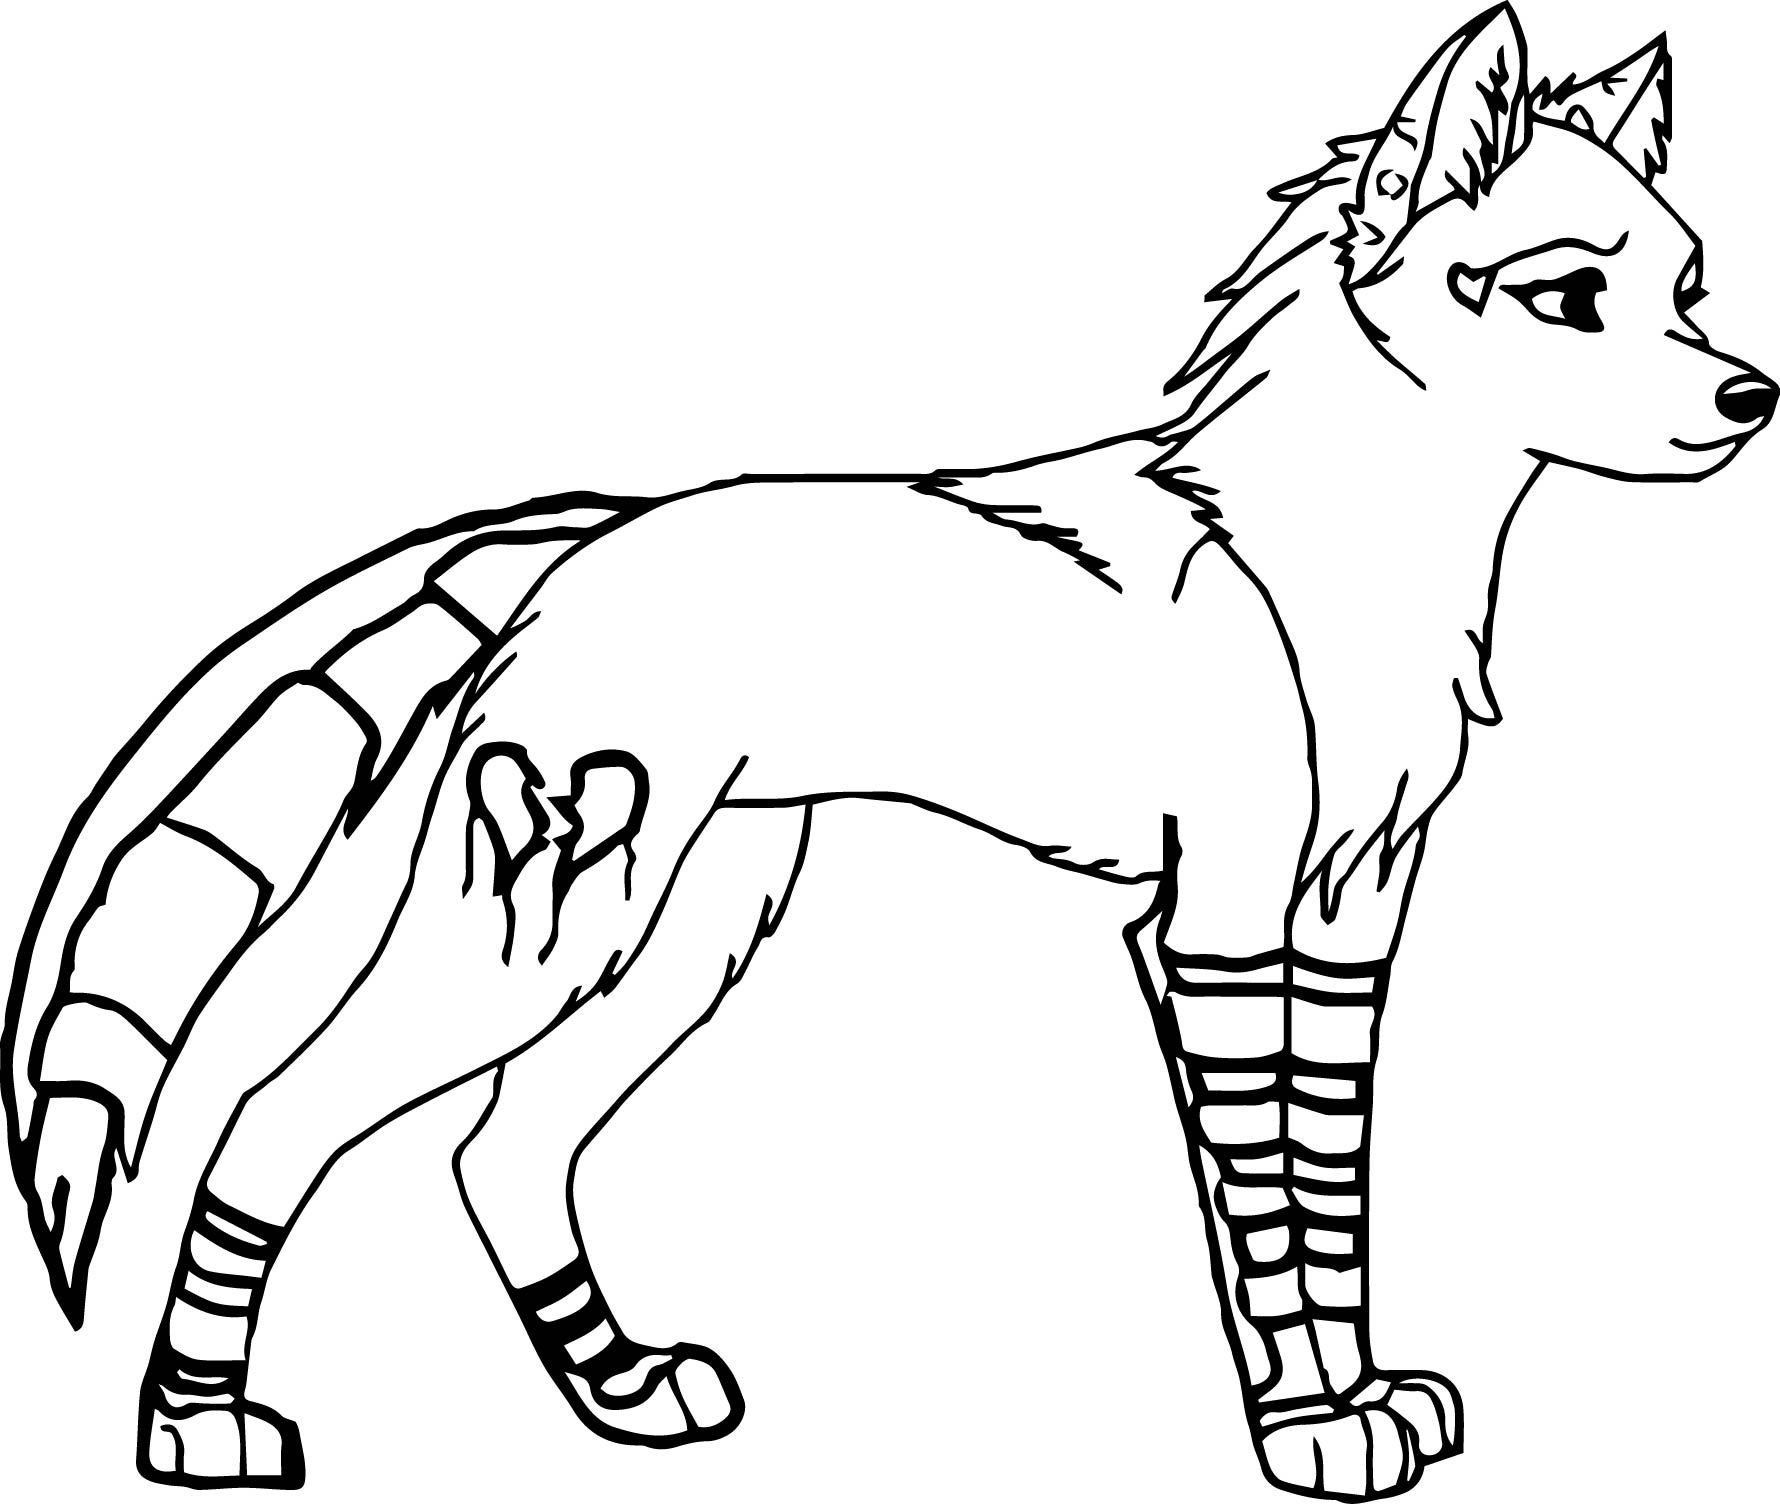 Wolf Coloring Pages For Adults Elegant Female Wolf Coloring Pages Gambar